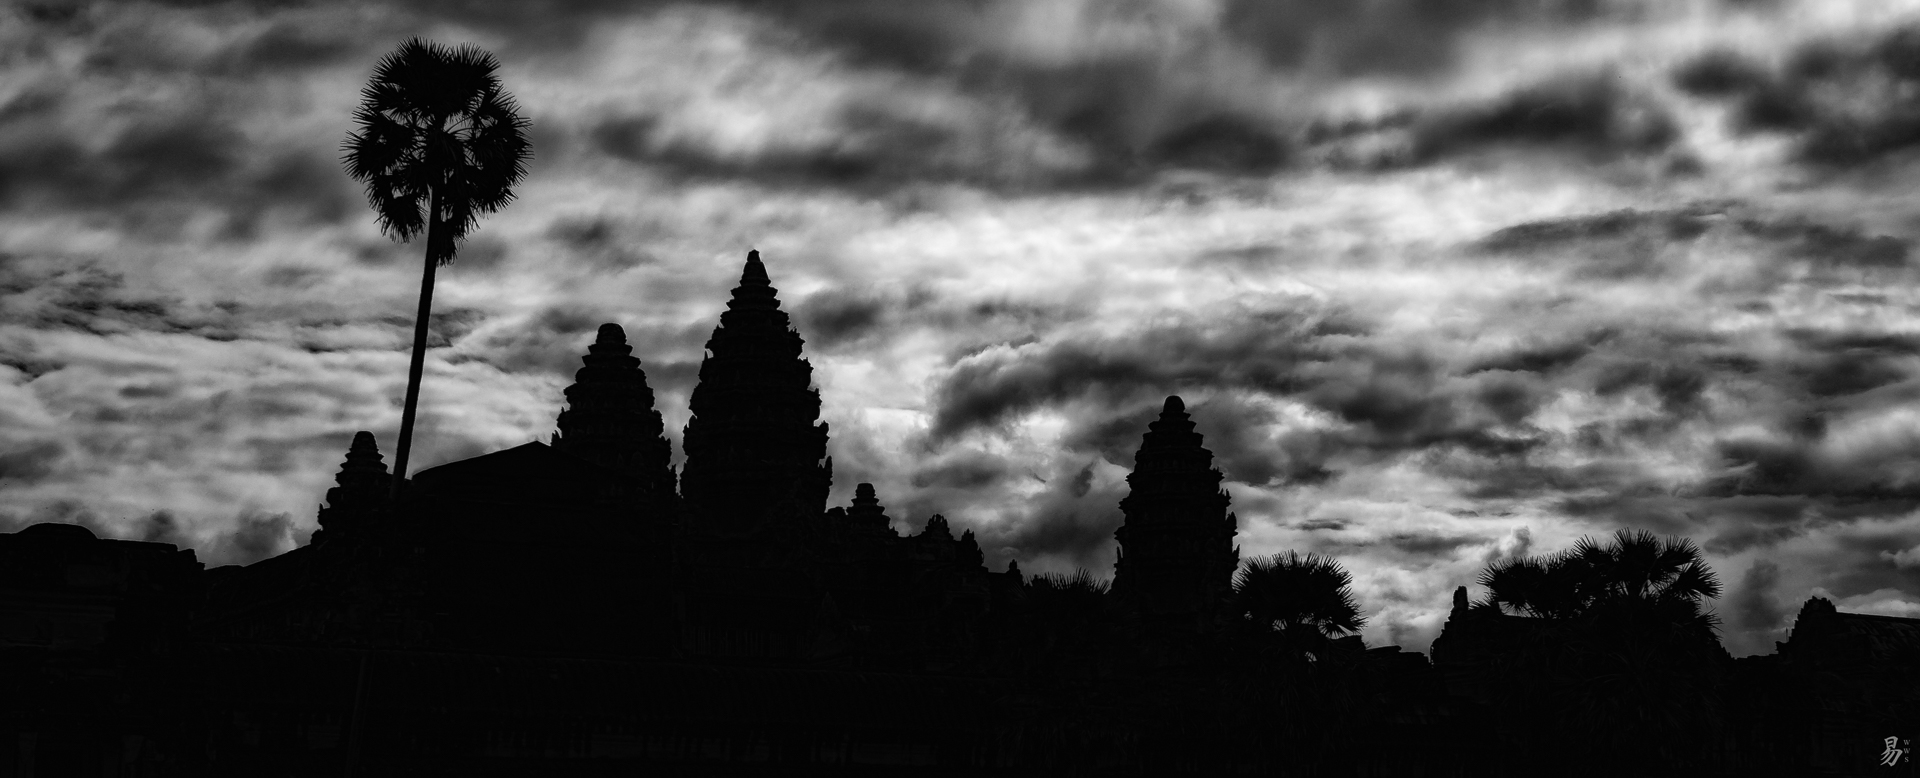 the other sight of 'angkor wat'